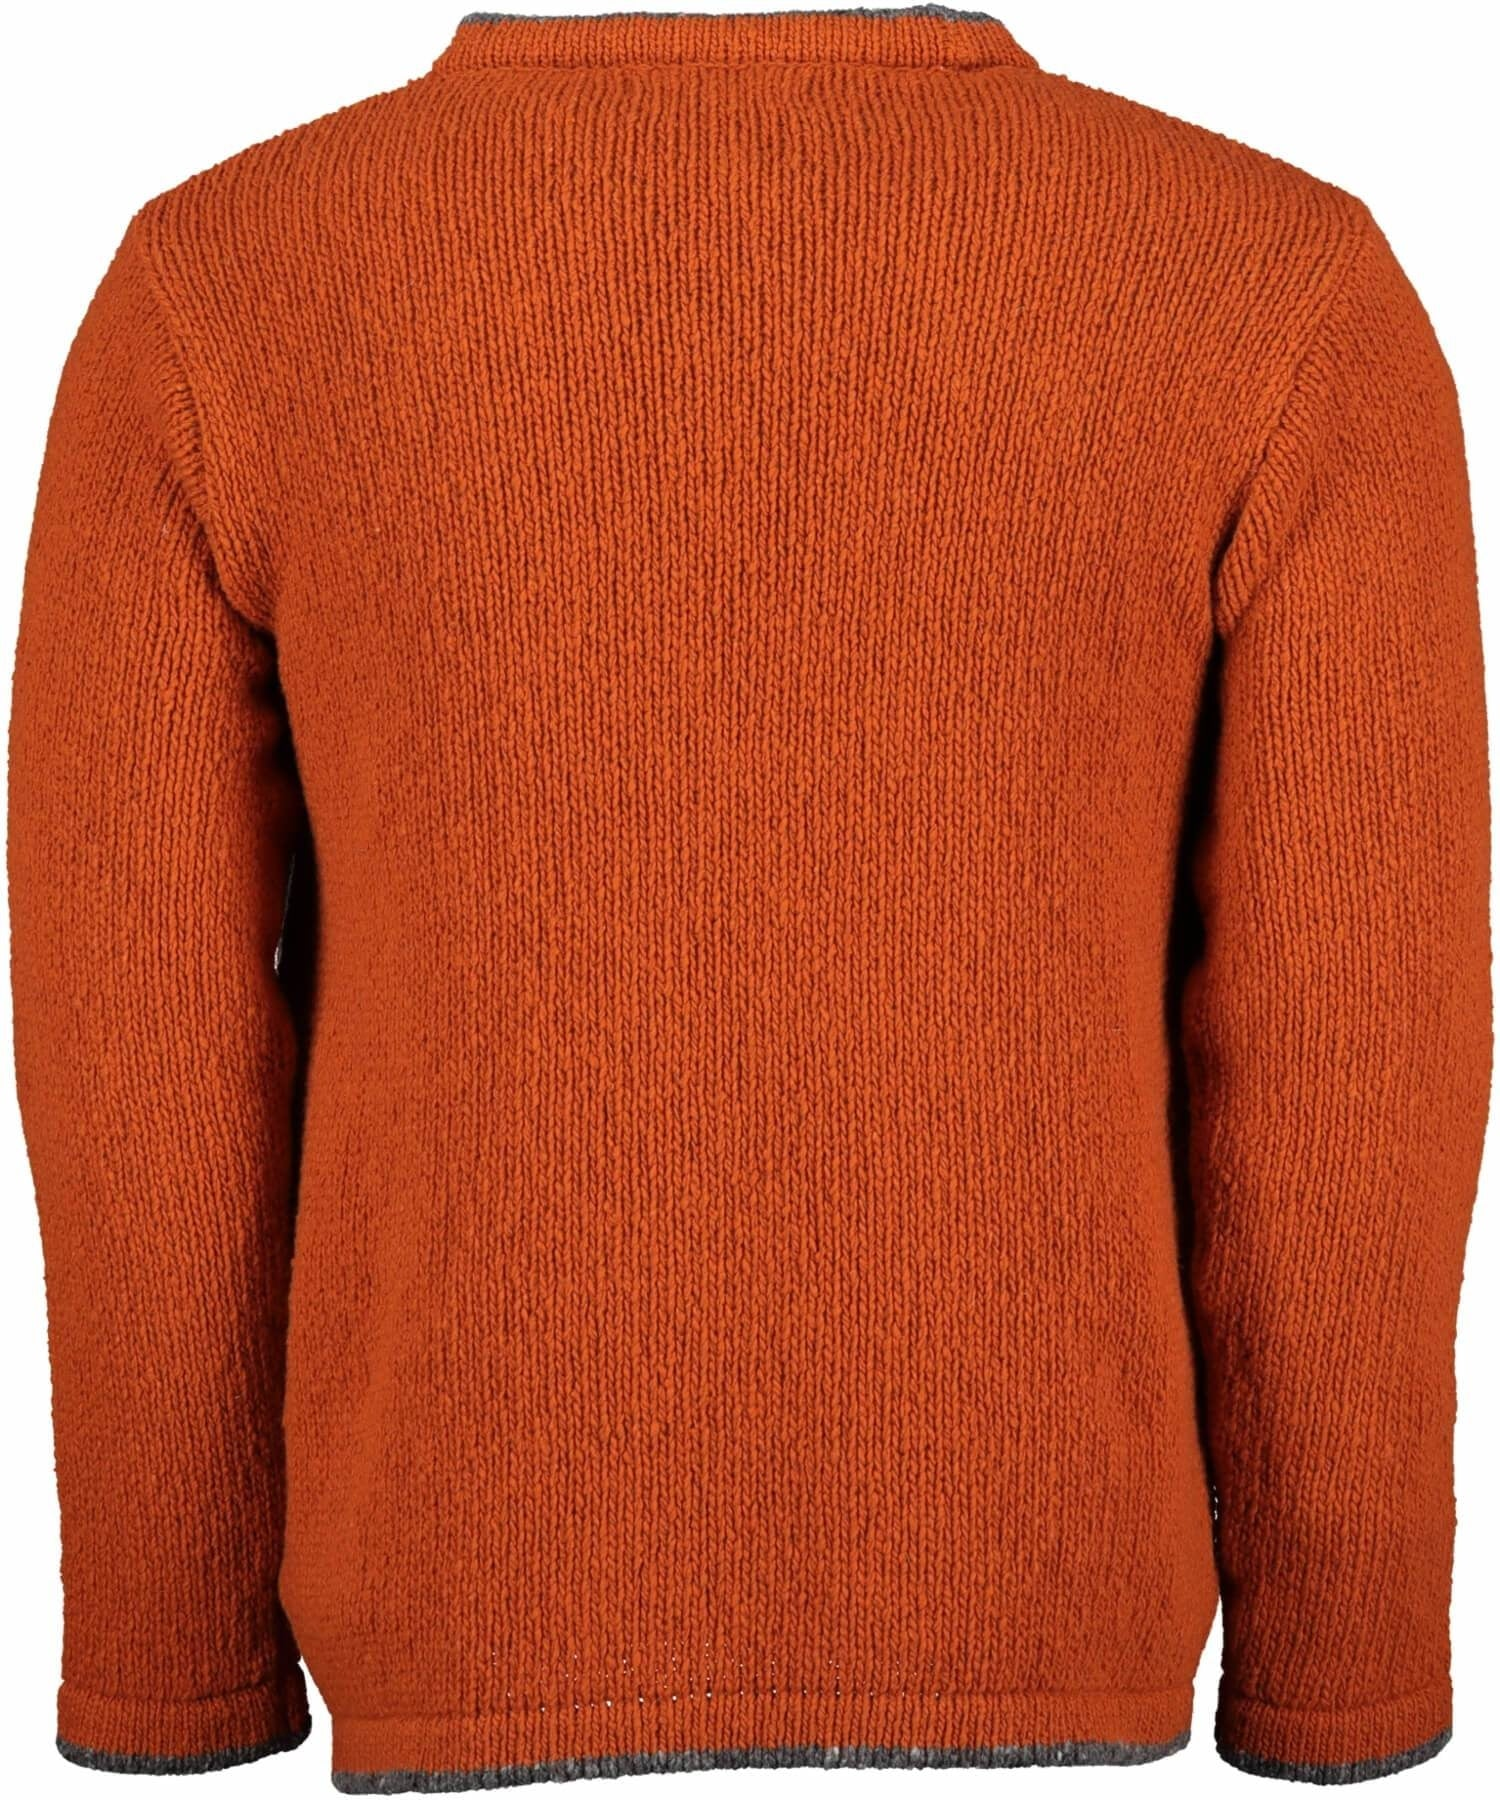 Roundstone Sweater - Terra Cotta Irelands Eye Mens Sweaters & Cardigans